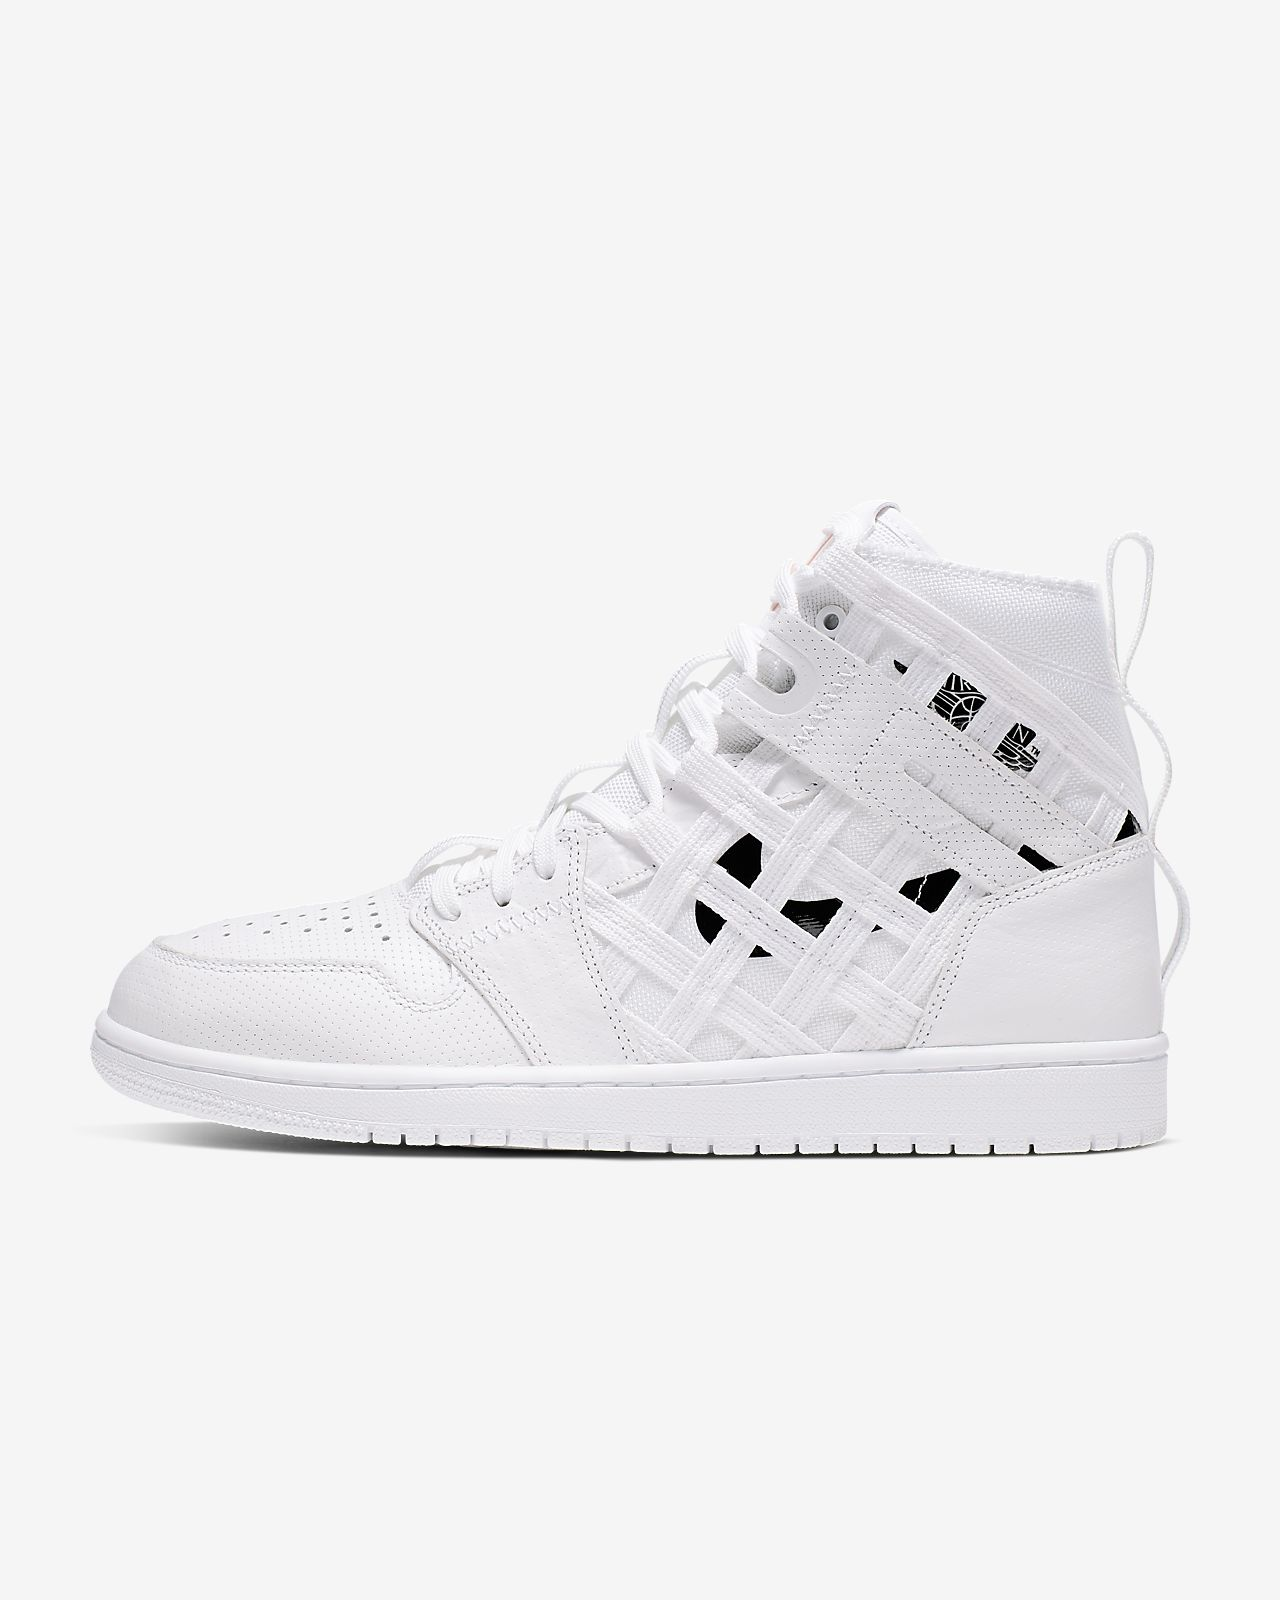 94a62476bcb Air Jordan 1 Cargo Men's Shoe. Nike.com